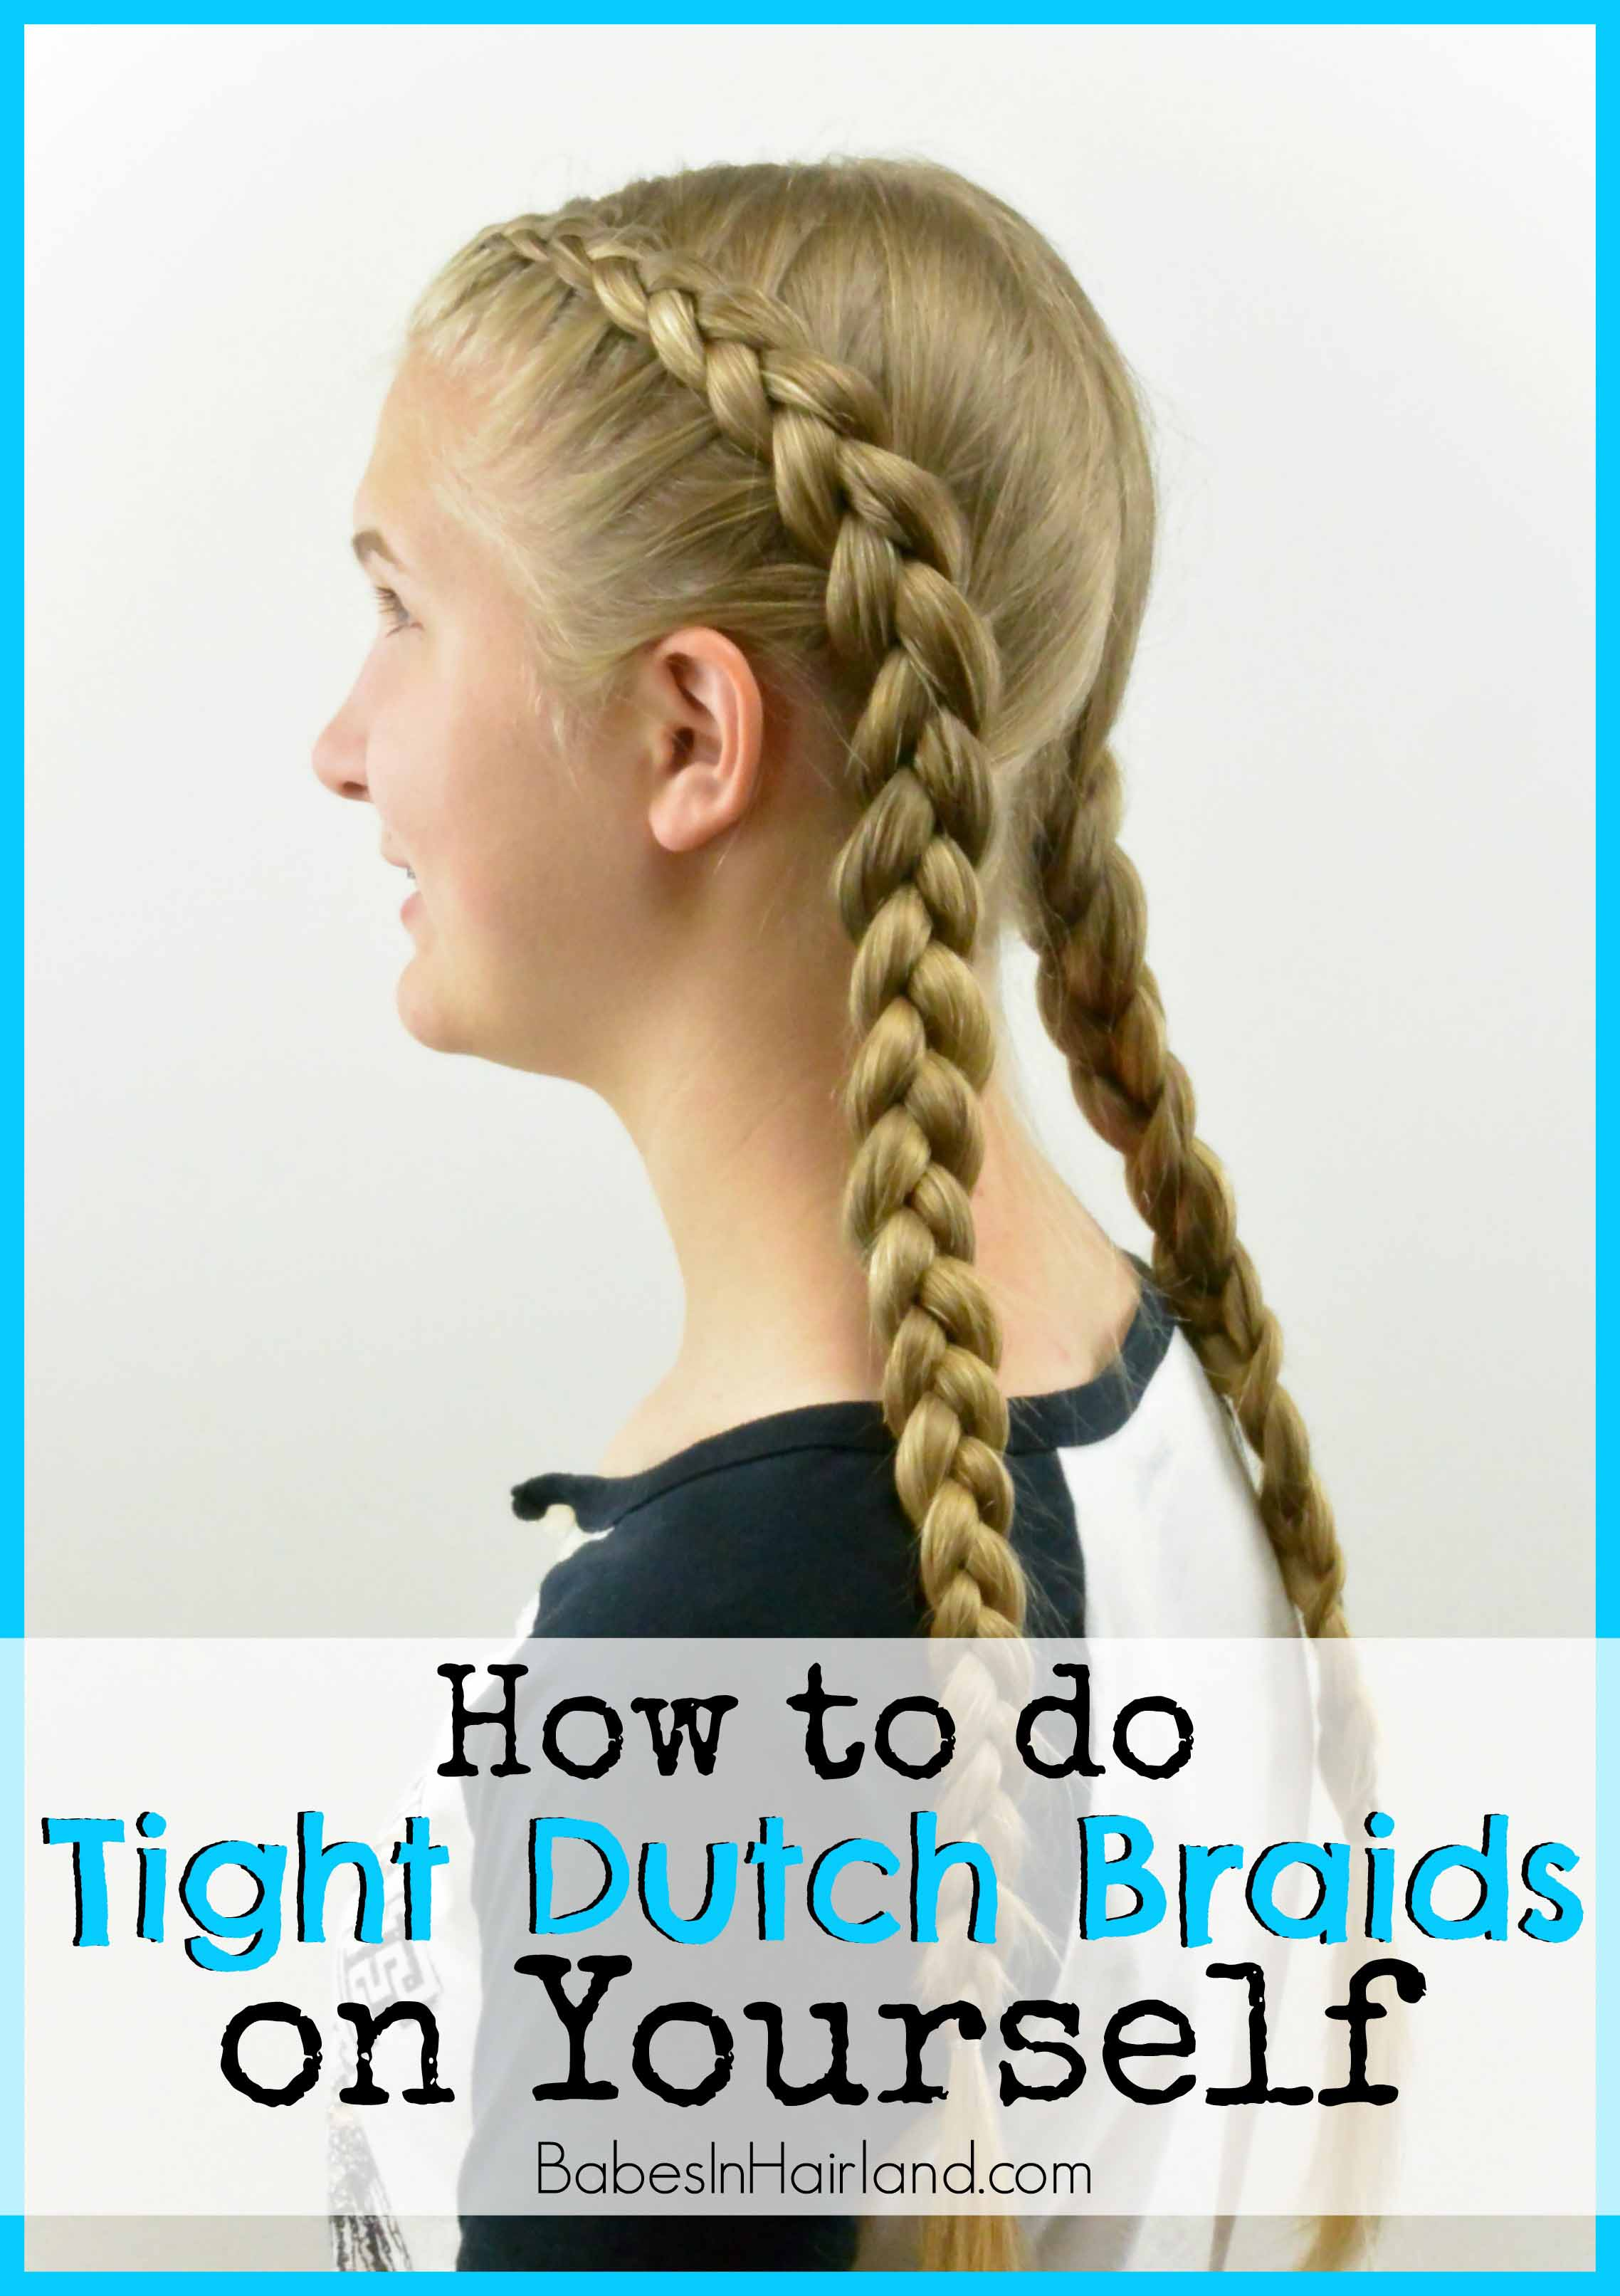 How to tight dutch braids on yourself babes in hairland how to tight dutch braids on yourself from babesinhairland dutchbraid frenchbraid solutioingenieria Gallery